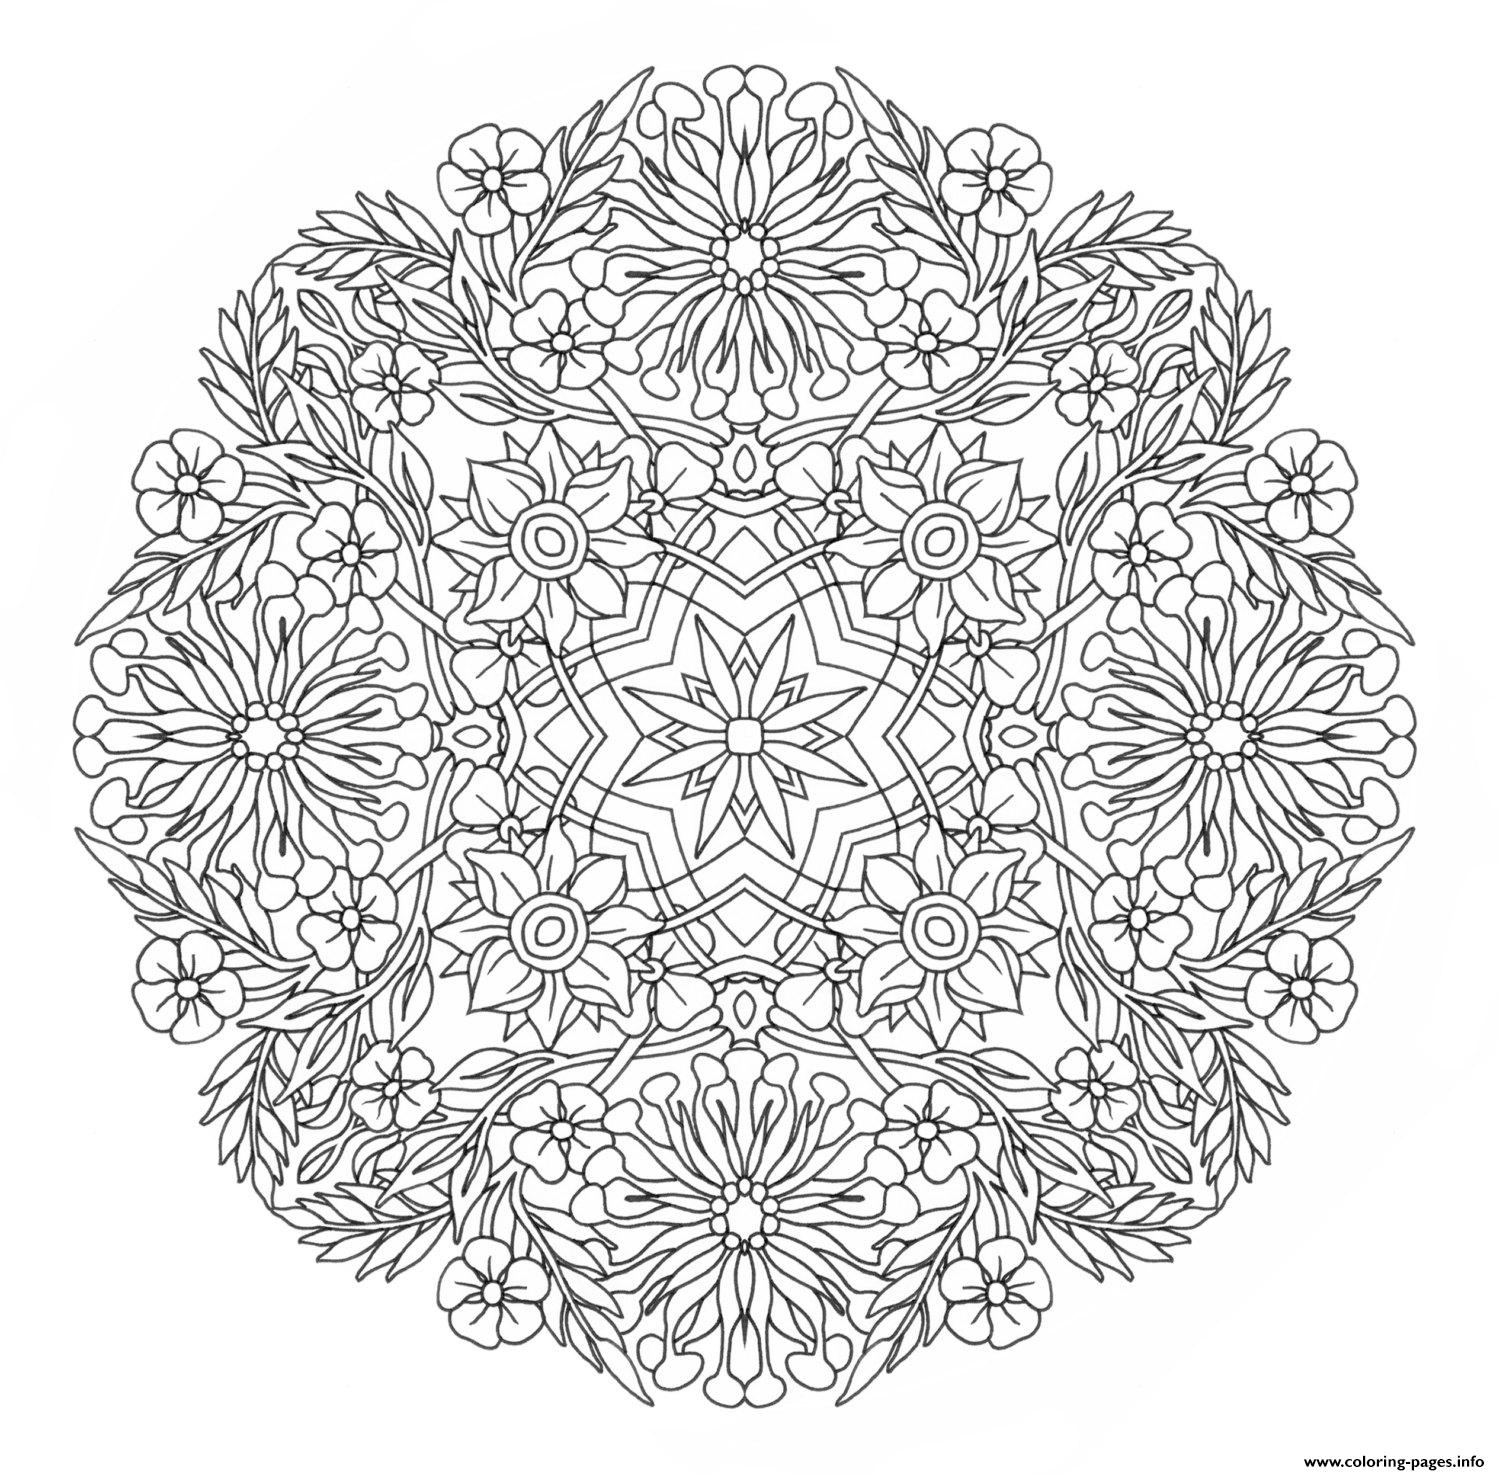 advanced mandala complex creative design coloring pages - Free Printable Advanced Coloring Pages